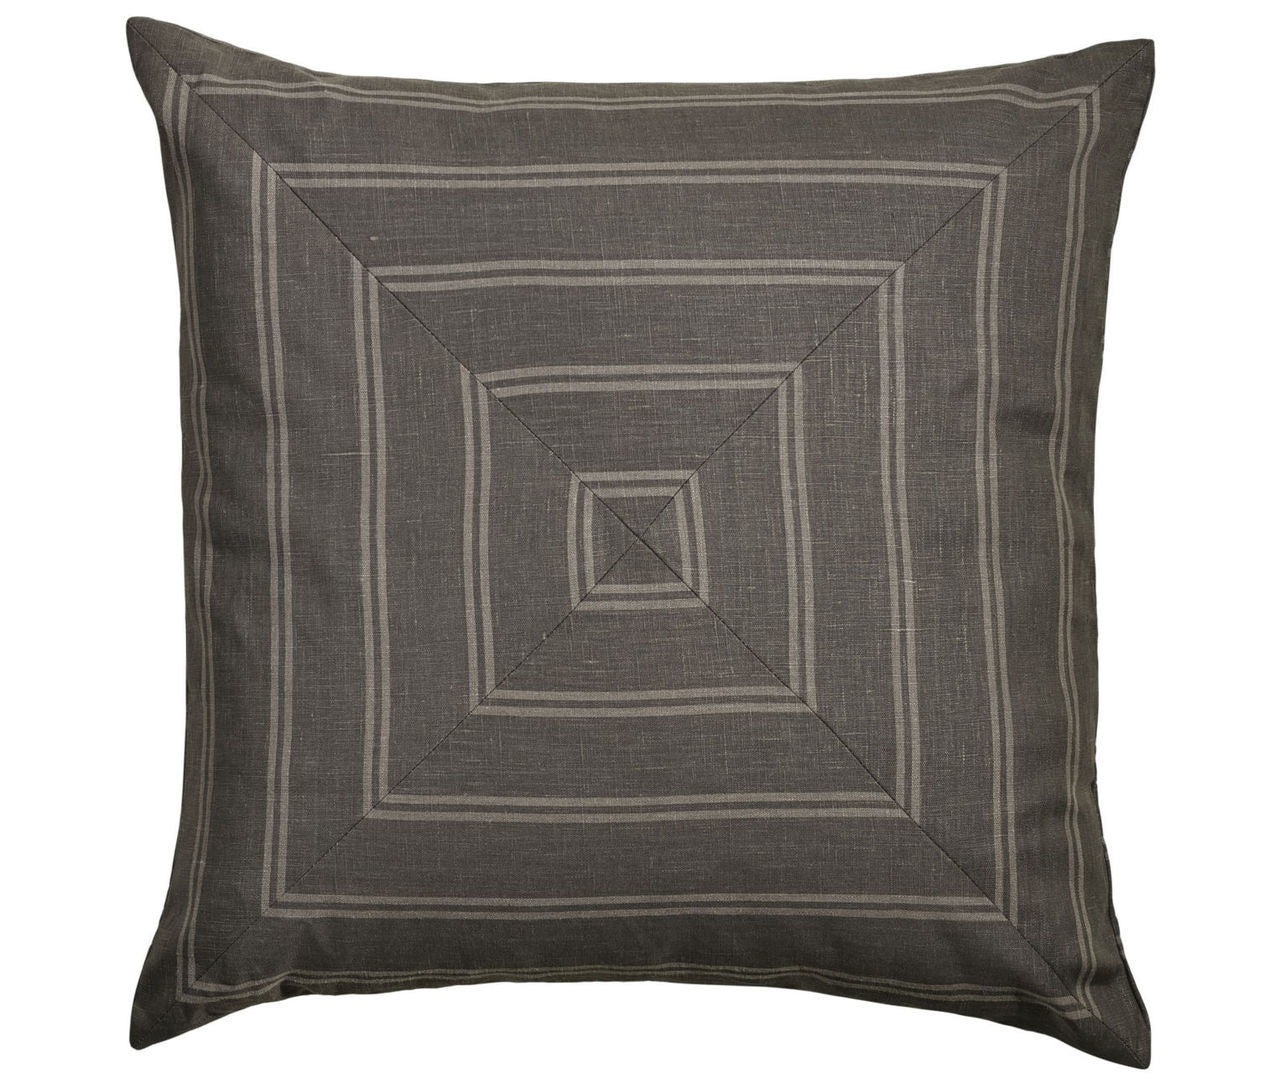 "Park Avenue 22"" Pillow Mystic Valley Traders"